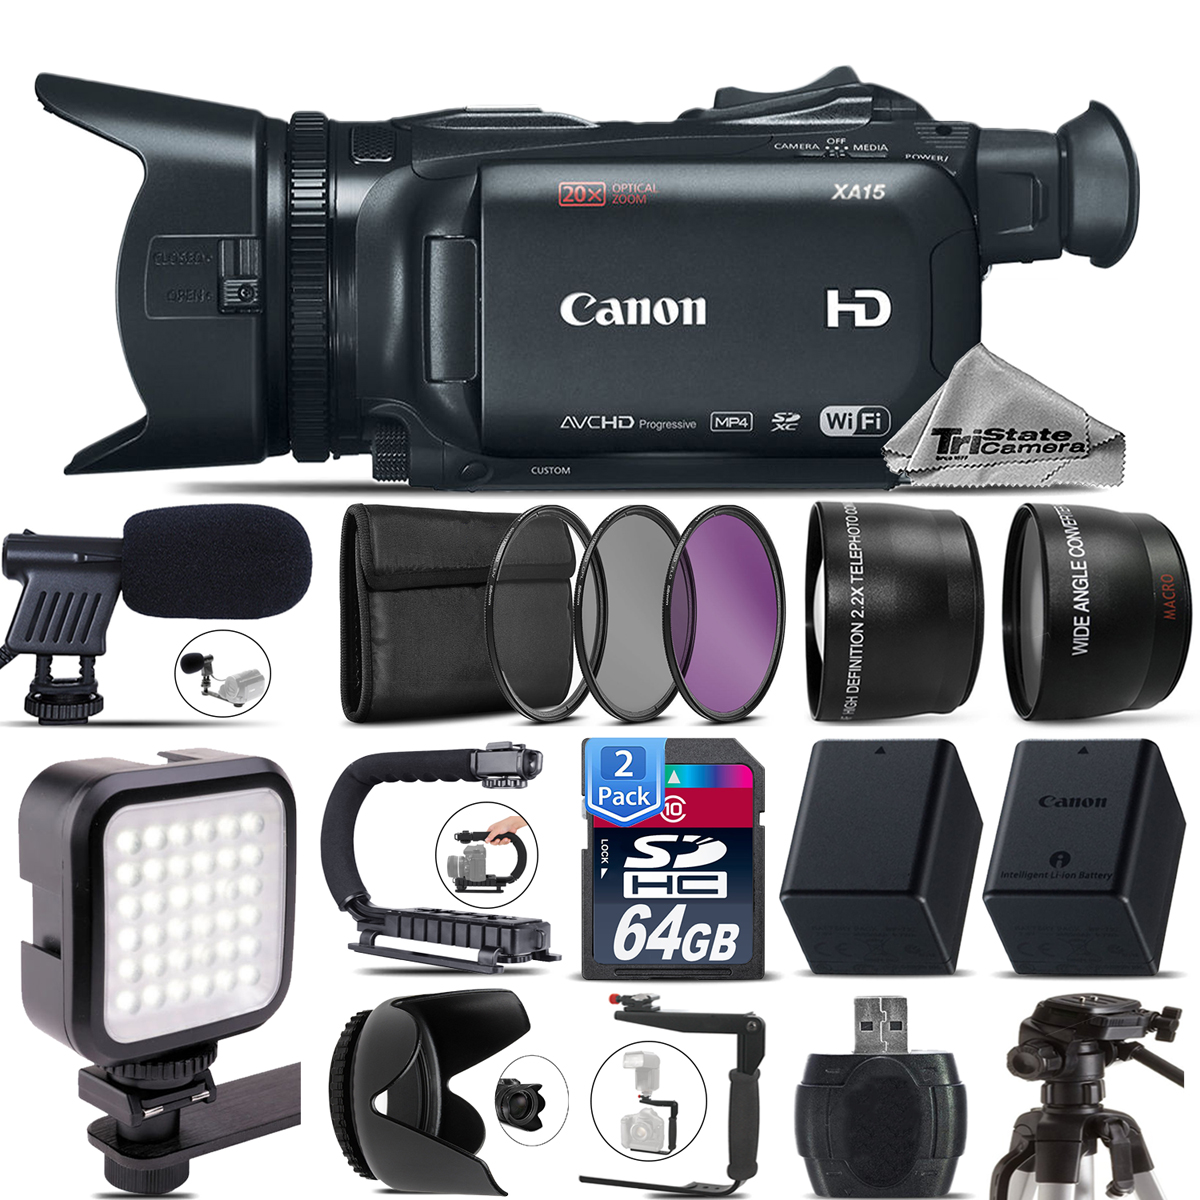 Canon XA15 Camcorder + Mic + LED + Telephoto & Wide Angle Lens &More! -128GB Kit by Tri StateCamera